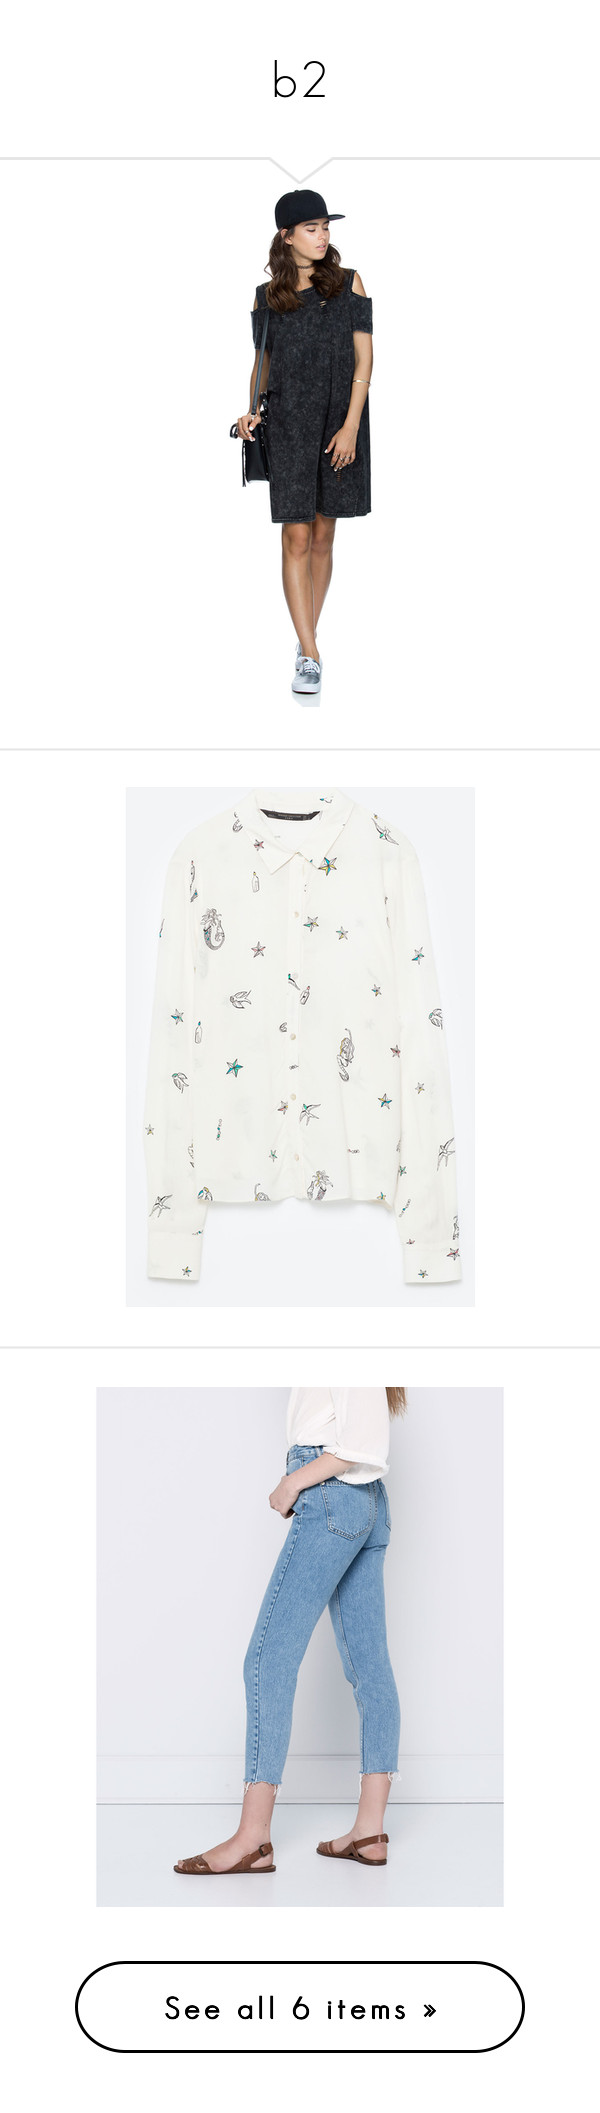 """""""b2"""" by ivanna149 ❤ liked on Polyvore featuring tops, white shirt, sirena, white patterned shirt, print shirts, patterned tops, jeans, sweaters, oversized tops and over sized sweaters"""